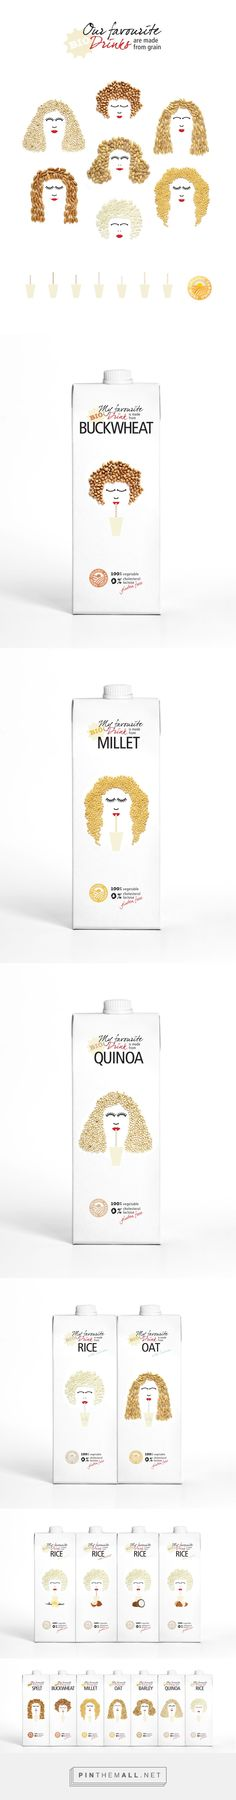 My favourite drink is made from... on Behance via Zita Sramkó curated by Packaging Diva PD. What a cute packaging design concept drinks made from grains : )